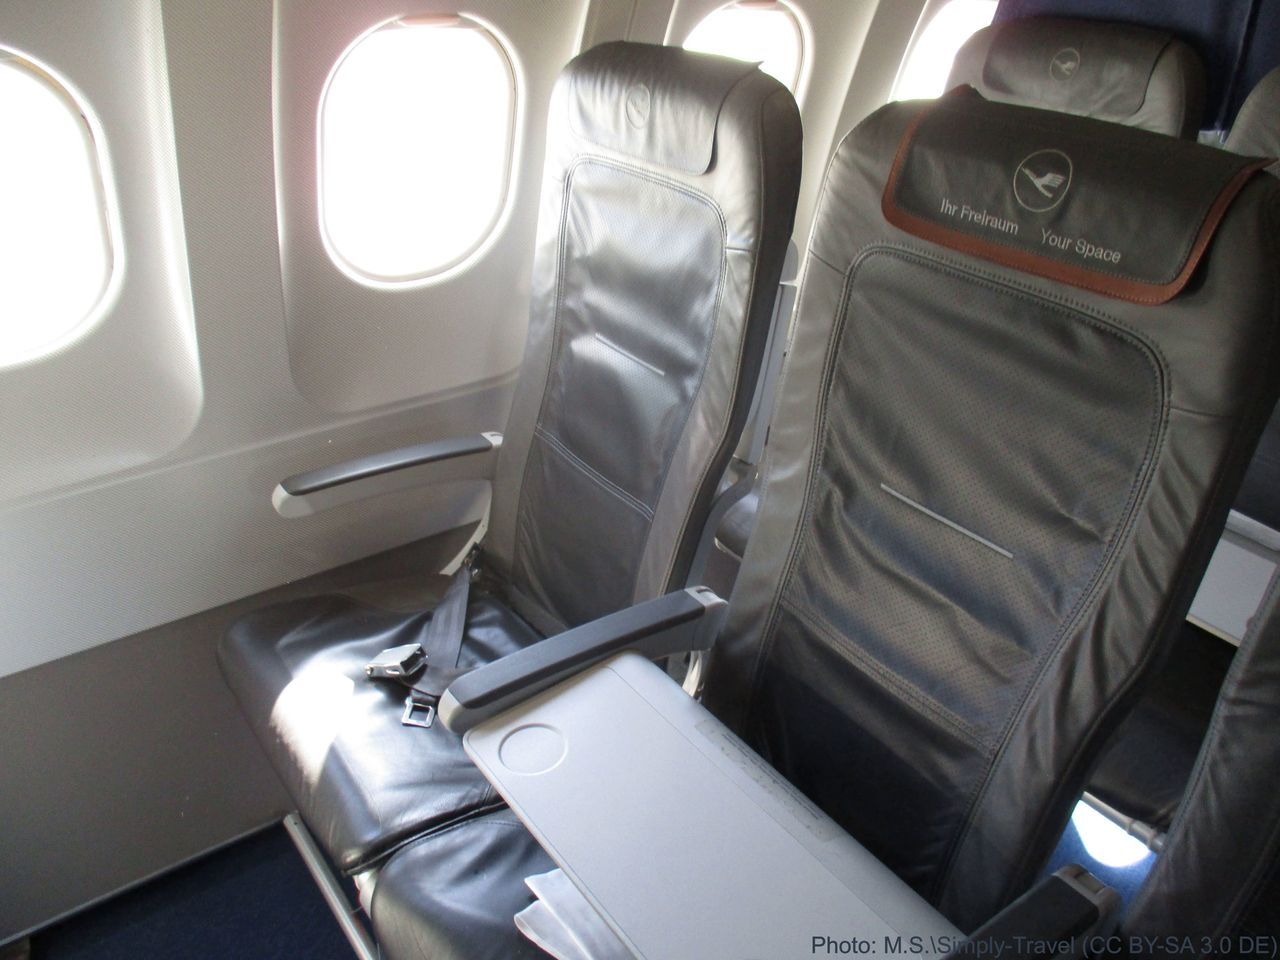 review of lufthansa flight from barcelona to munich in. Black Bedroom Furniture Sets. Home Design Ideas